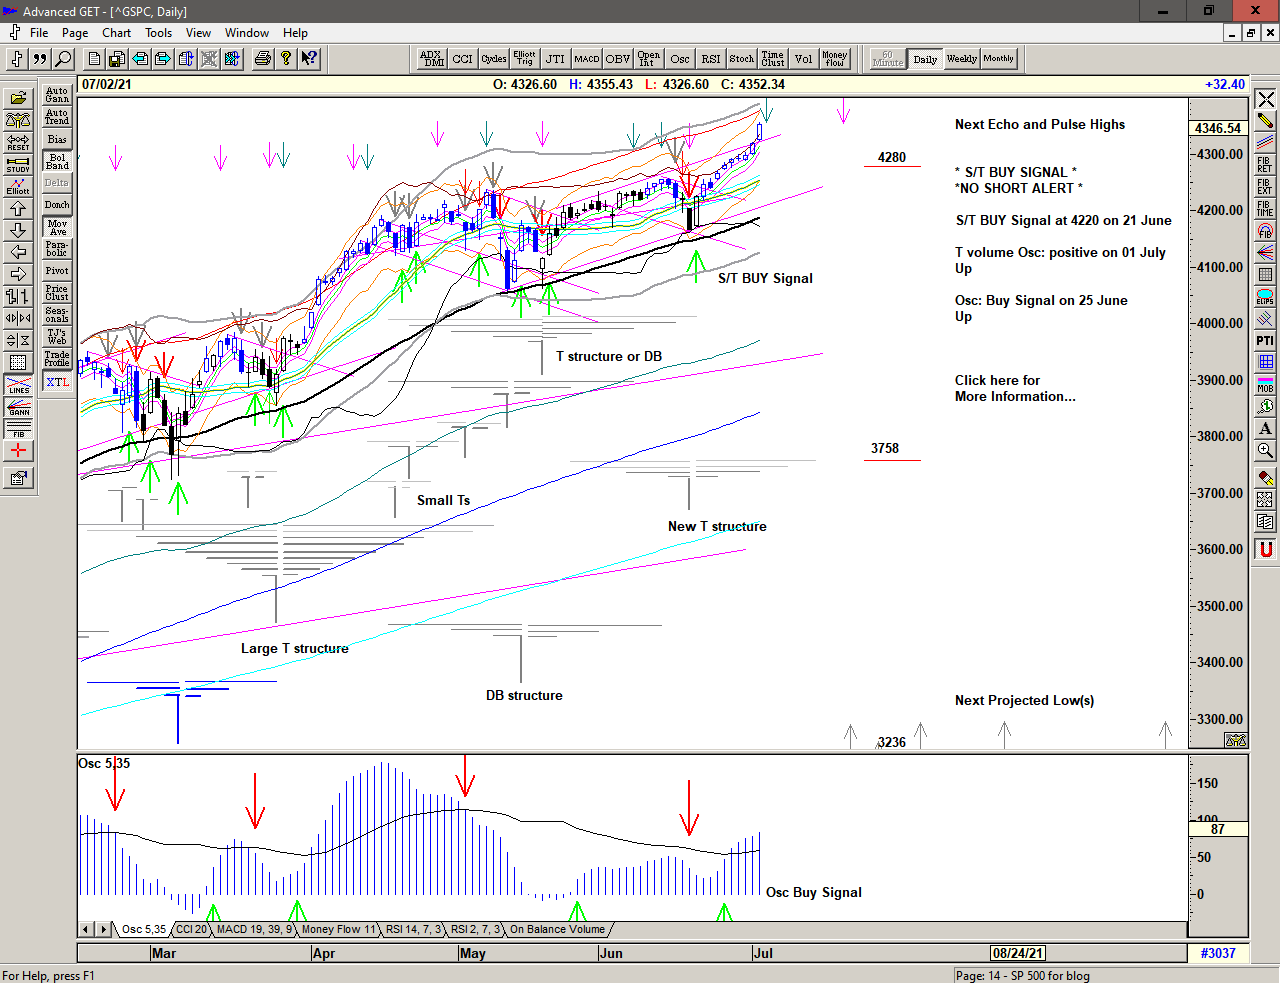 Daily chart of S&P 500 for 28 June 2021